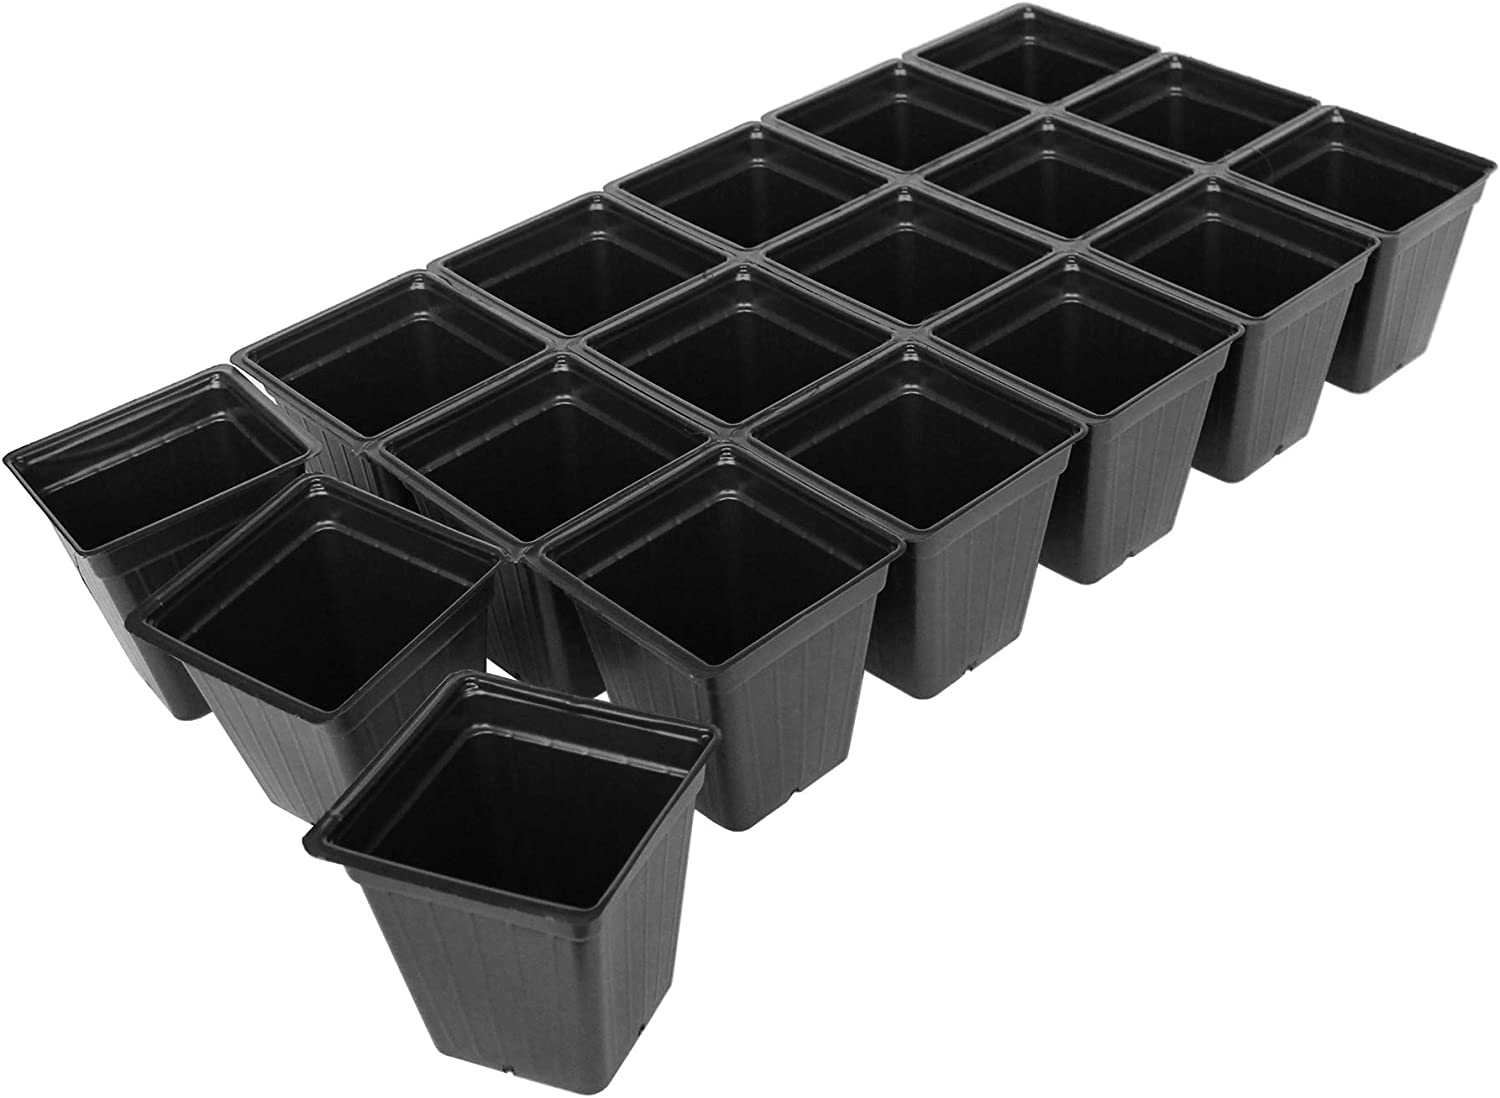 Handy Pantry Black Plastic Garden Tray Inserts - 100 Sheets of 18 Planting Pot Cells Each - 3x6 Configuration - Perforated - Nursery, Greenhouse, Gardening